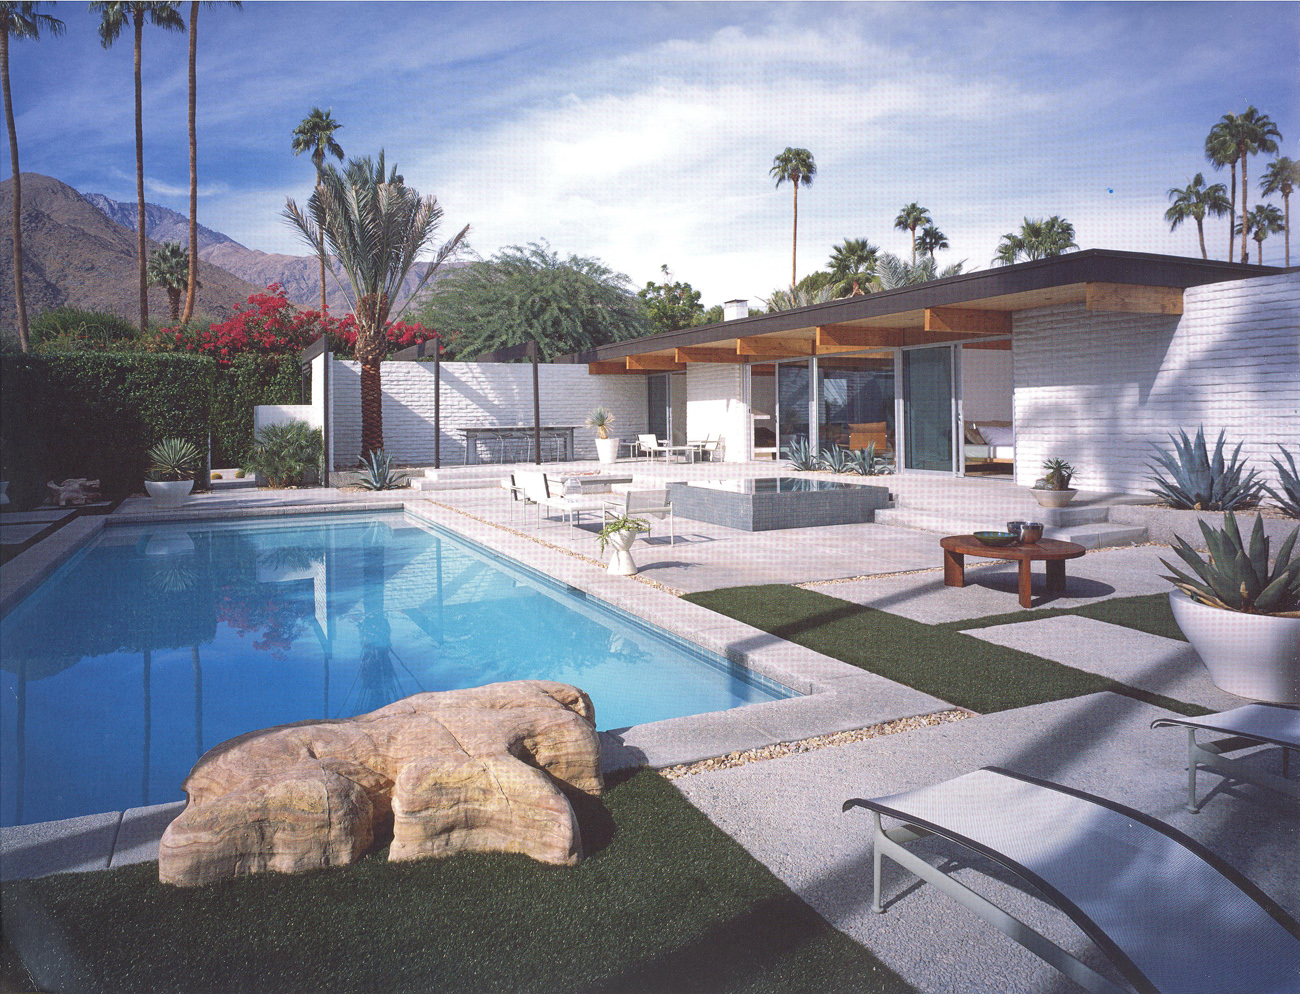 Fab House gallery of ad classics: steel pre-fab houses / donald wexler - 5